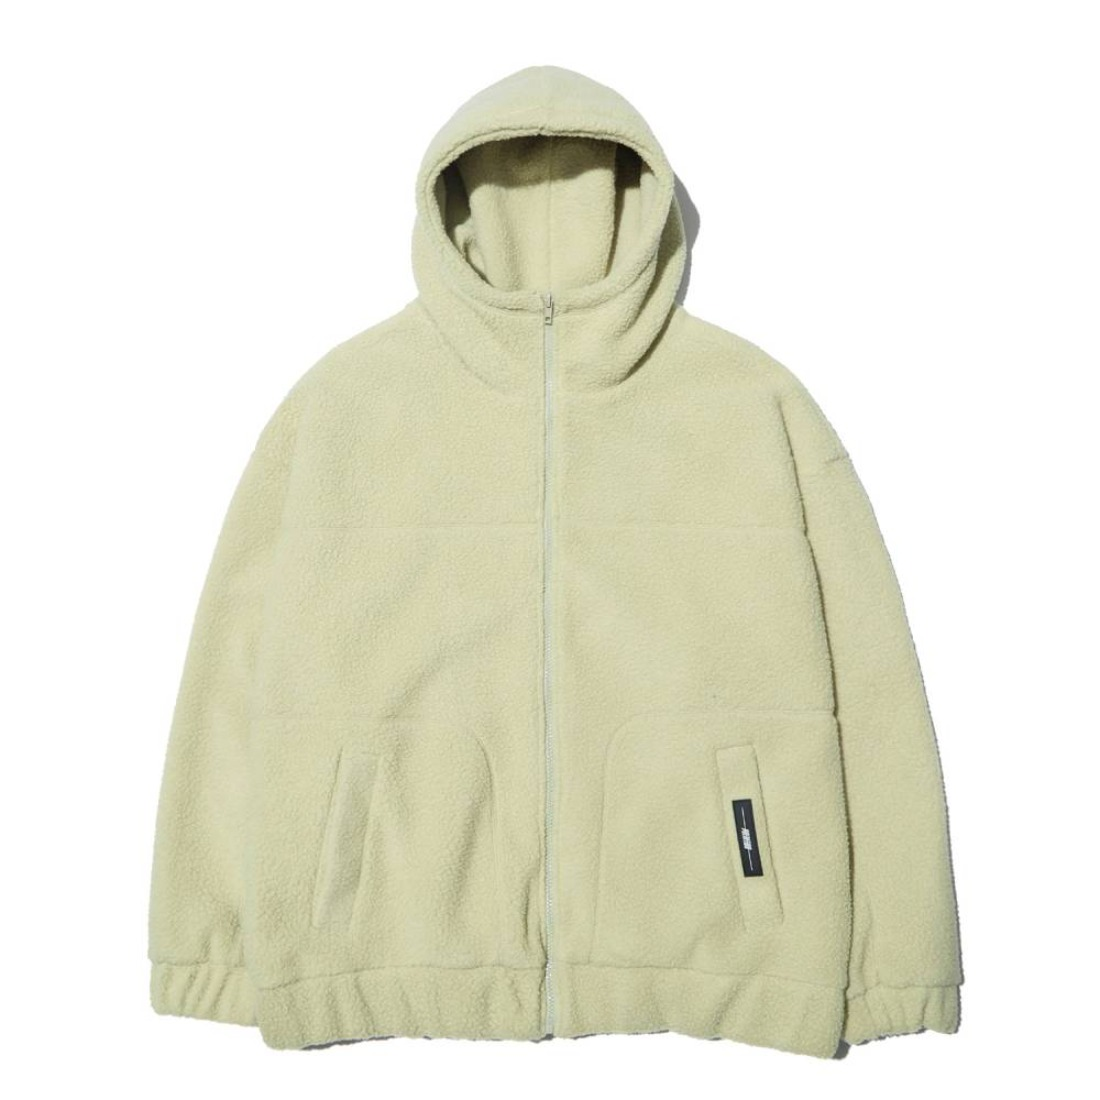 FLEECE ZIP-UP HOOD LIGHT KHAKI